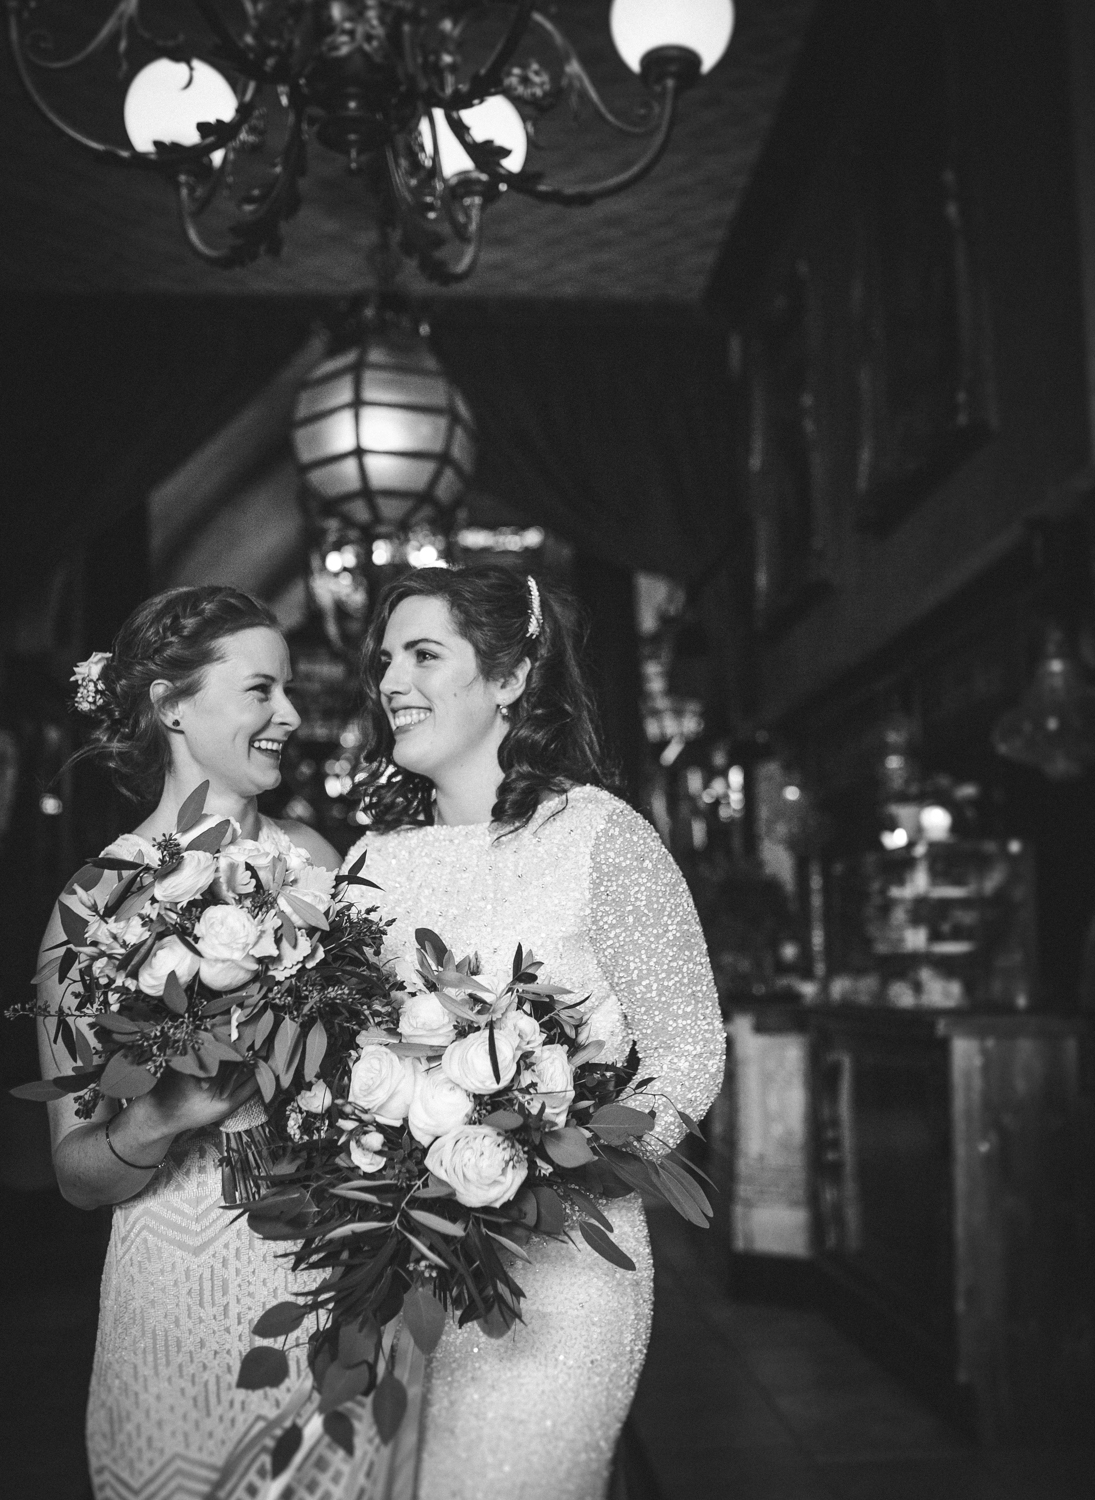 Fallon and Byrne wedding-10.jpg